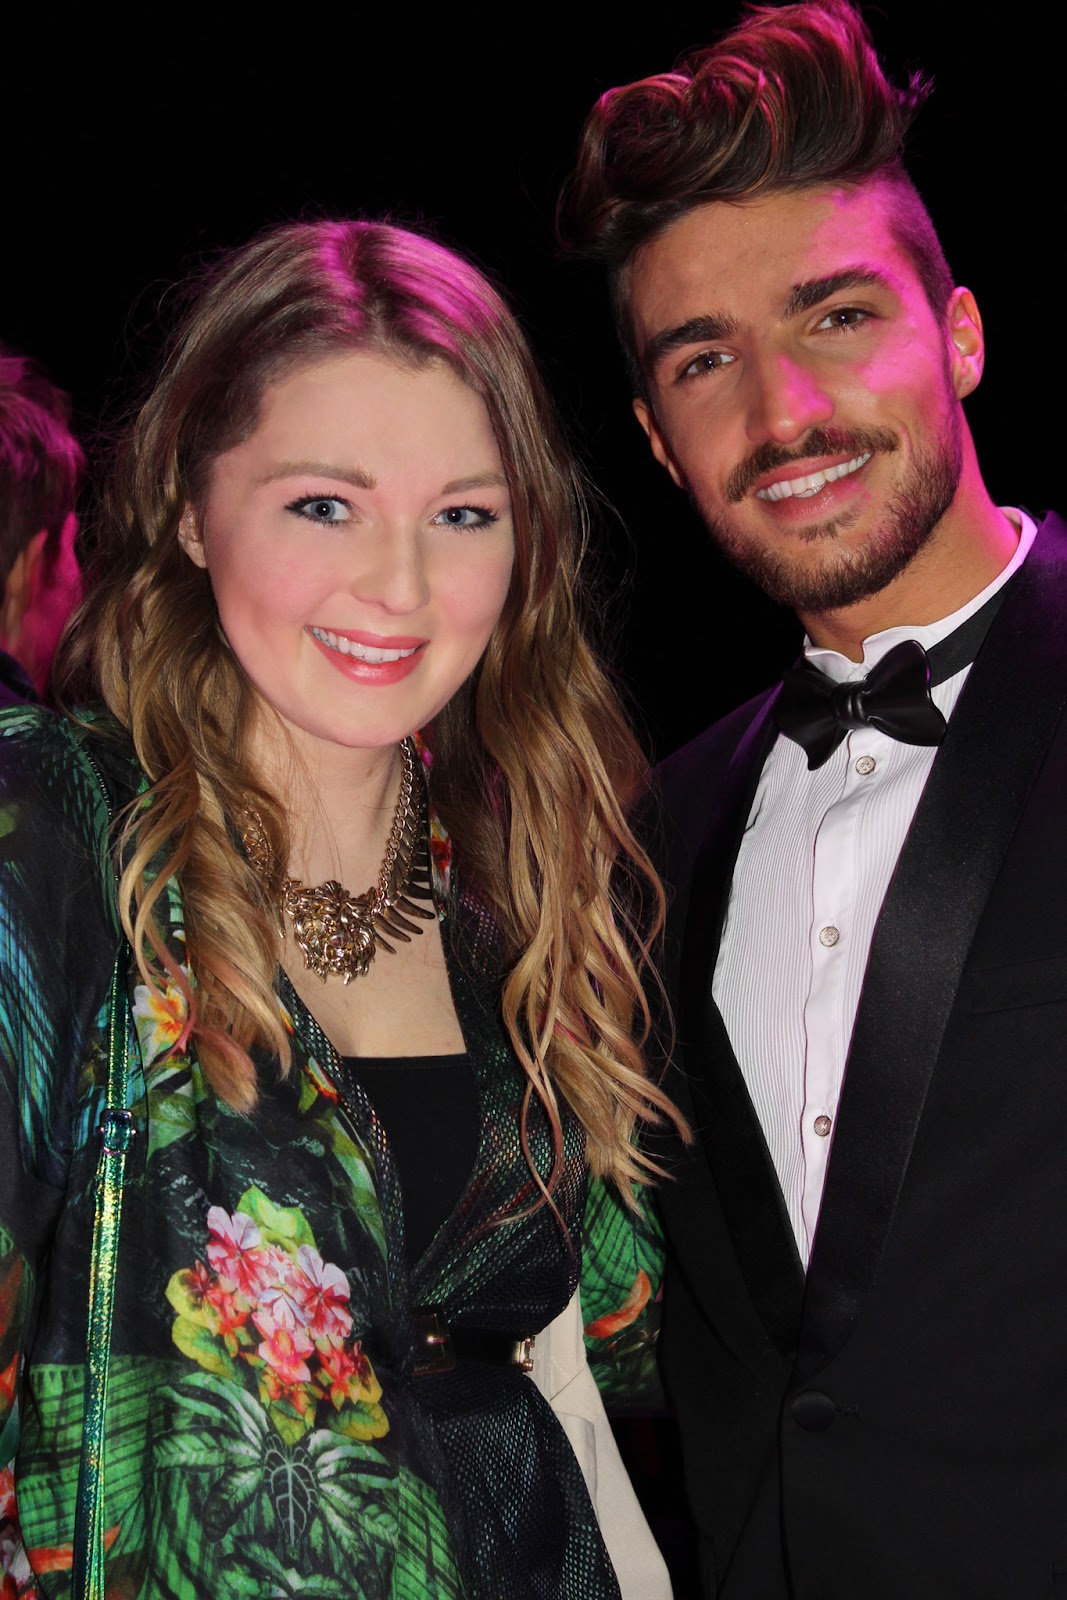 Mariano di vaio, stylight fashion blogger awards, 2014, berlin, after party, lion necklace, event, fashionweek